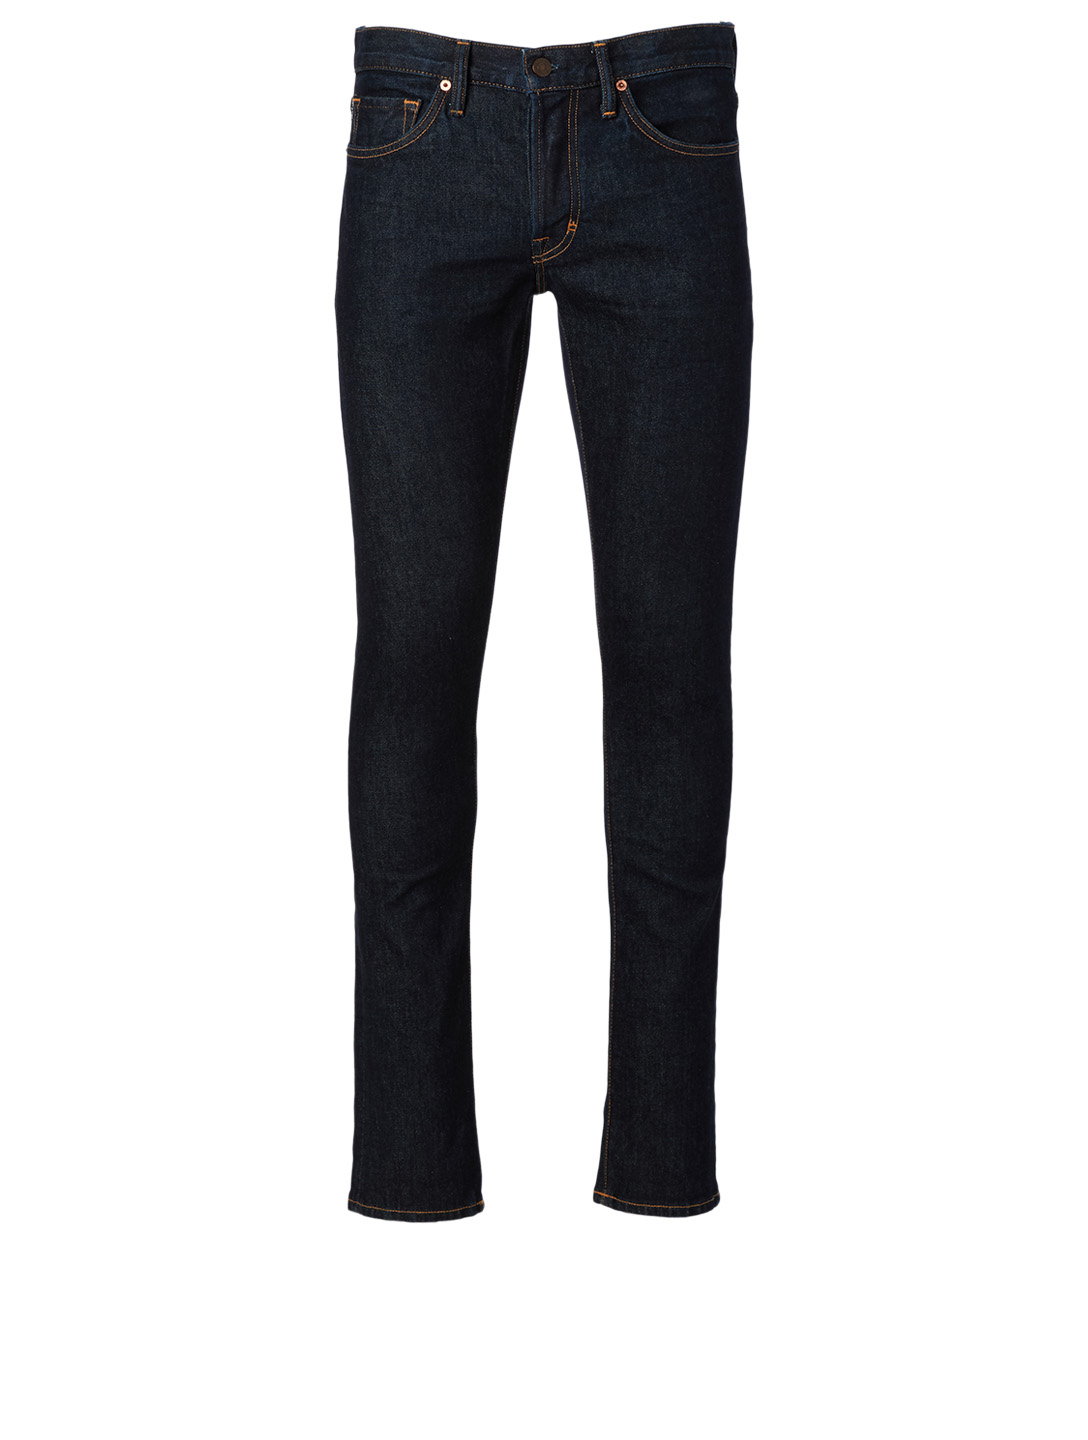 TOM FORD Cotton-Blend Slim-Fit Jeans Men's Blue